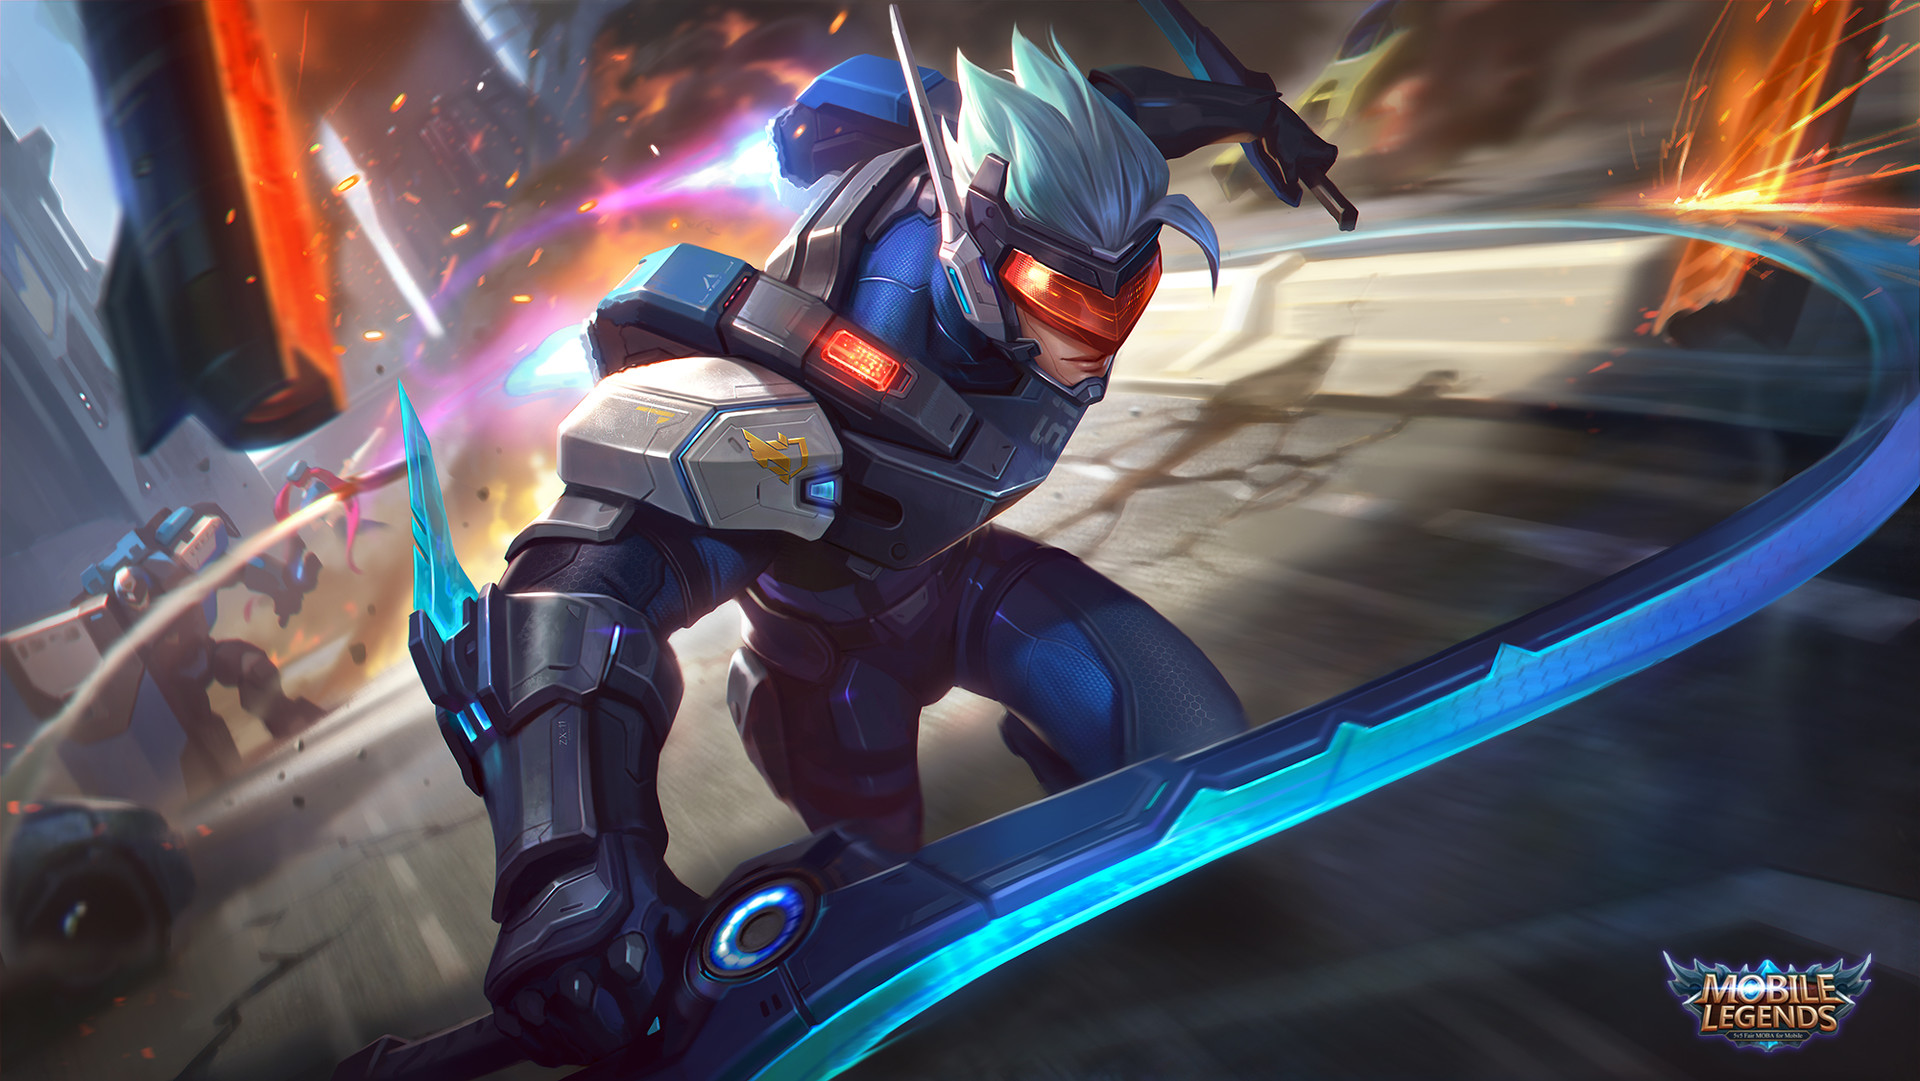 1920x1080 Mobile Legends Game Laptop Full Hd 1080p Hd 4k Wallpapers Images Backgrounds Photos And Pictures